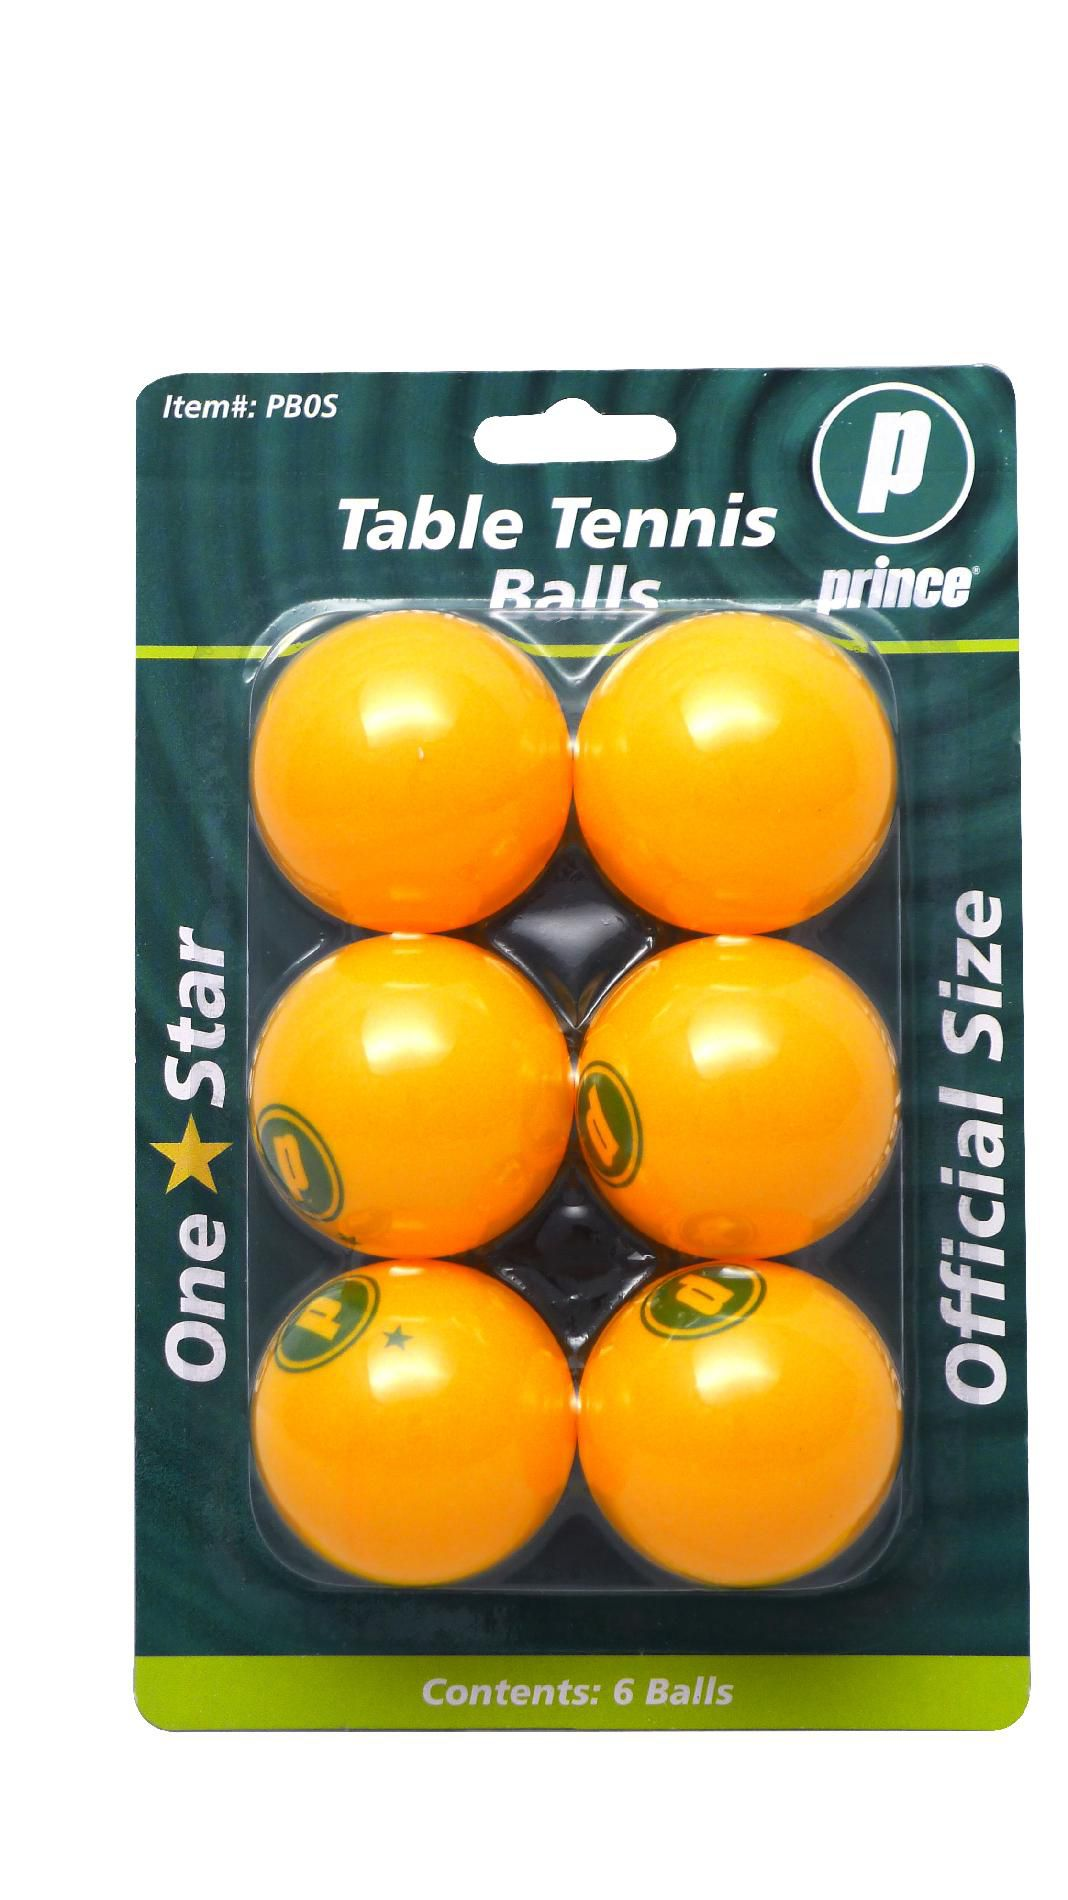 Prince Table Tennis Balls - Orange